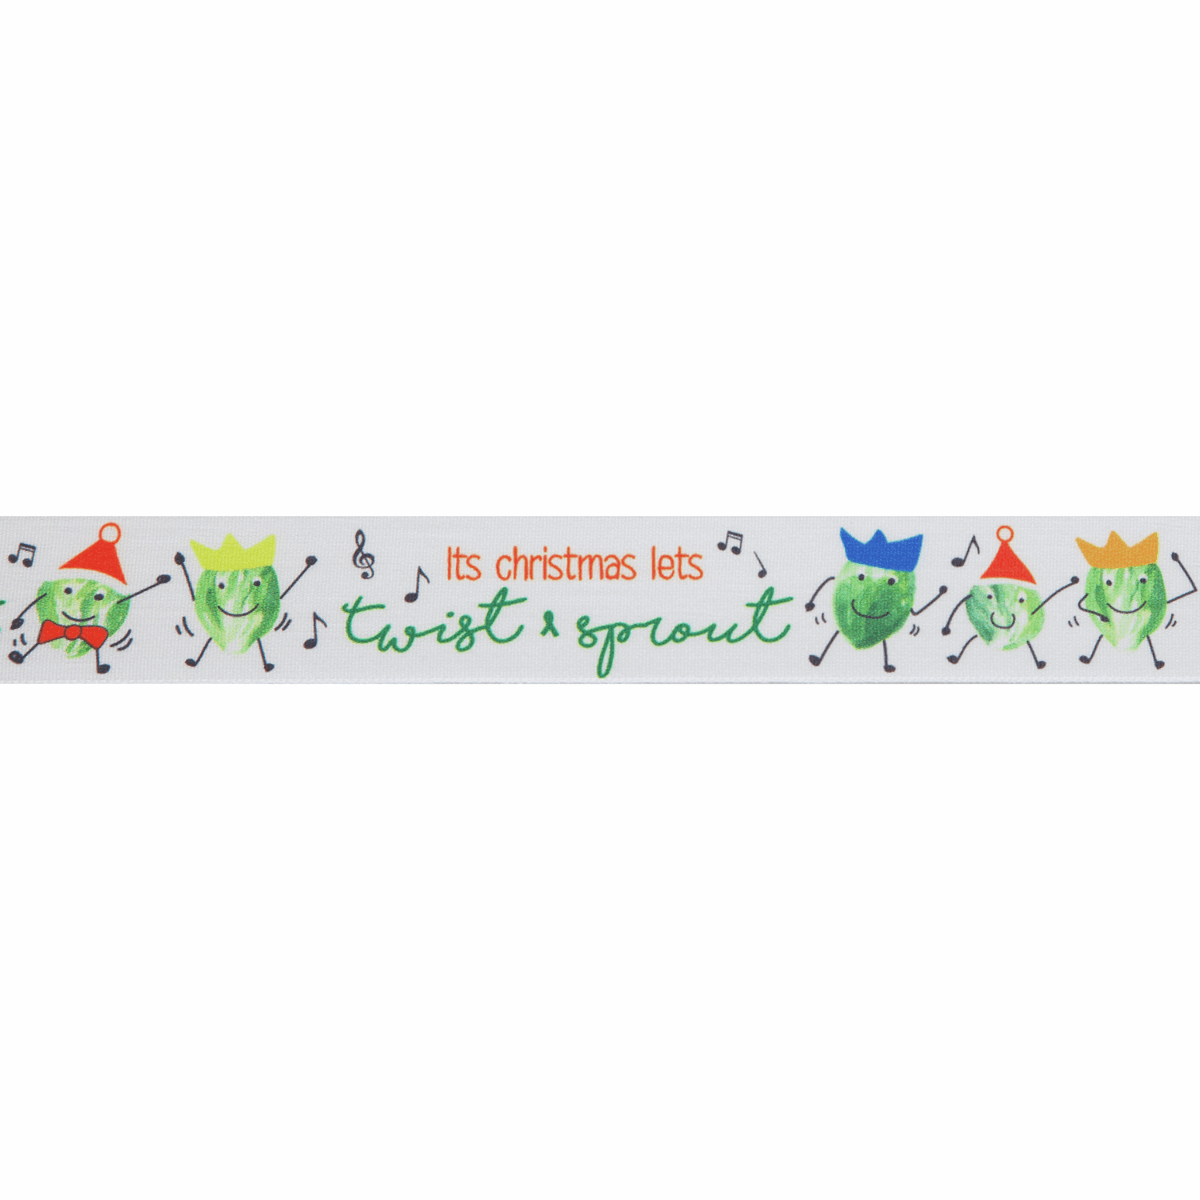 Berisfords Christmas Satin Ribbon 25mm Wide - Twist & Sprout - White